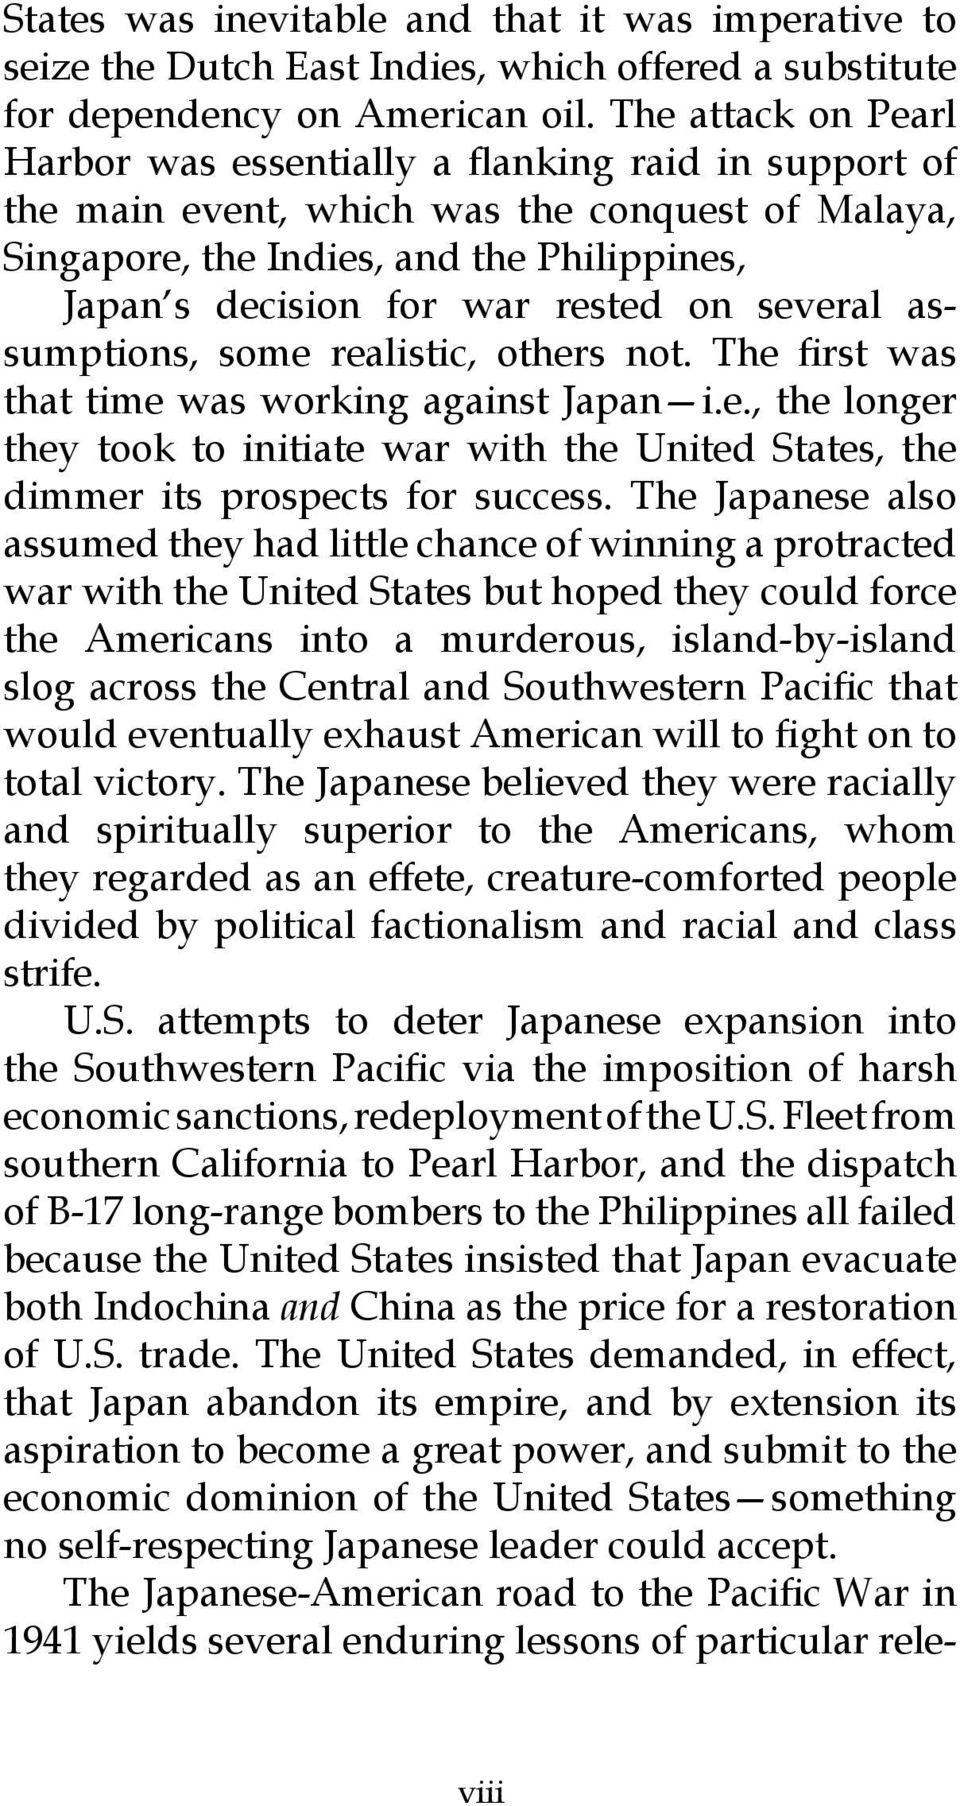 on several assumptions, some realistic, others not. The first was that time was working against Japan i.e., the longer they took to initiate war with the United States, the dimmer its prospects for success.